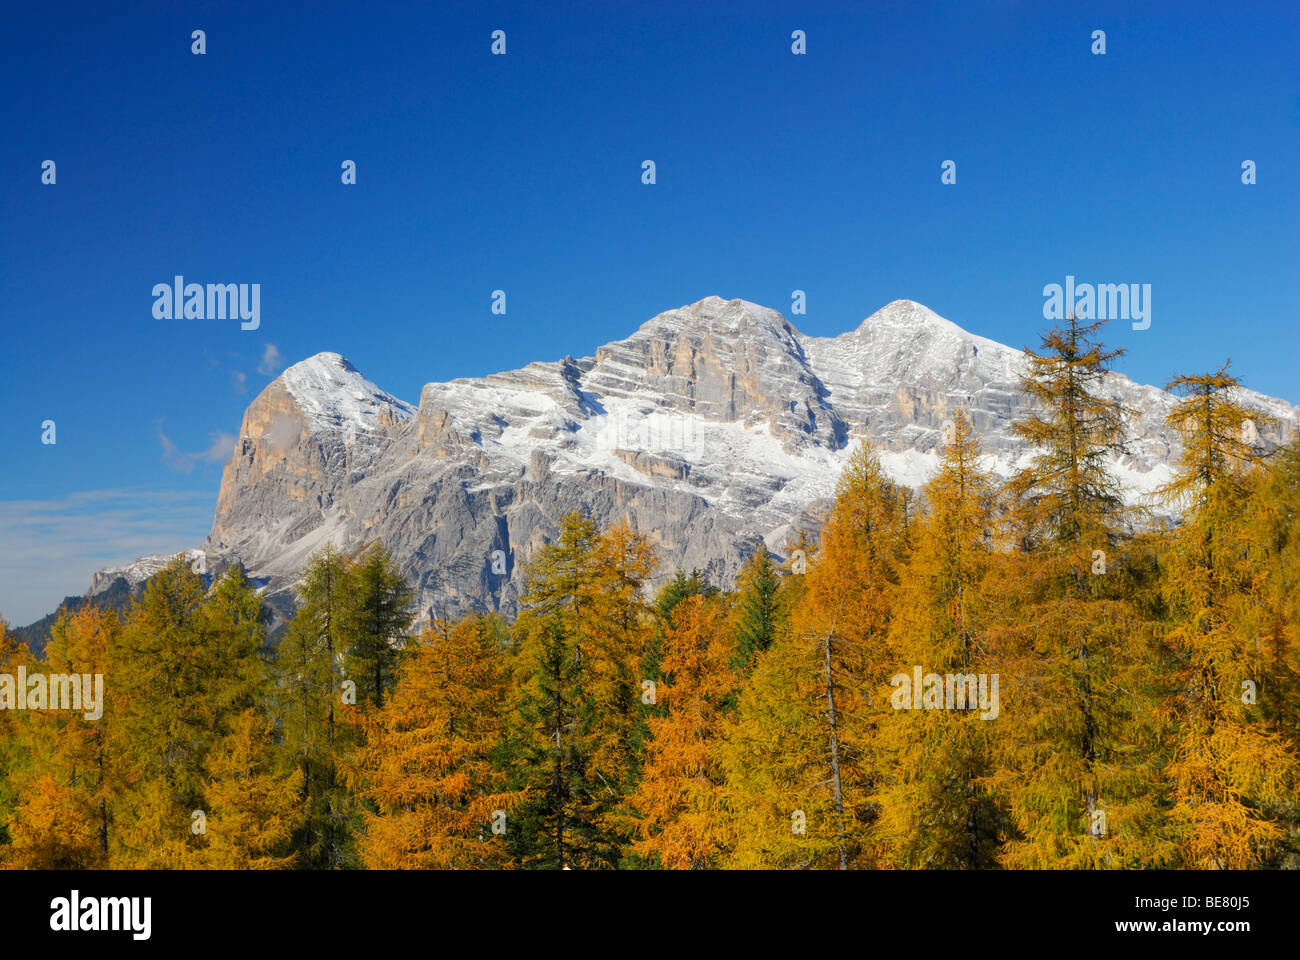 Tofana range with larches in autumn colours, Dolomites, South Tyrol, Italy Stock Photo